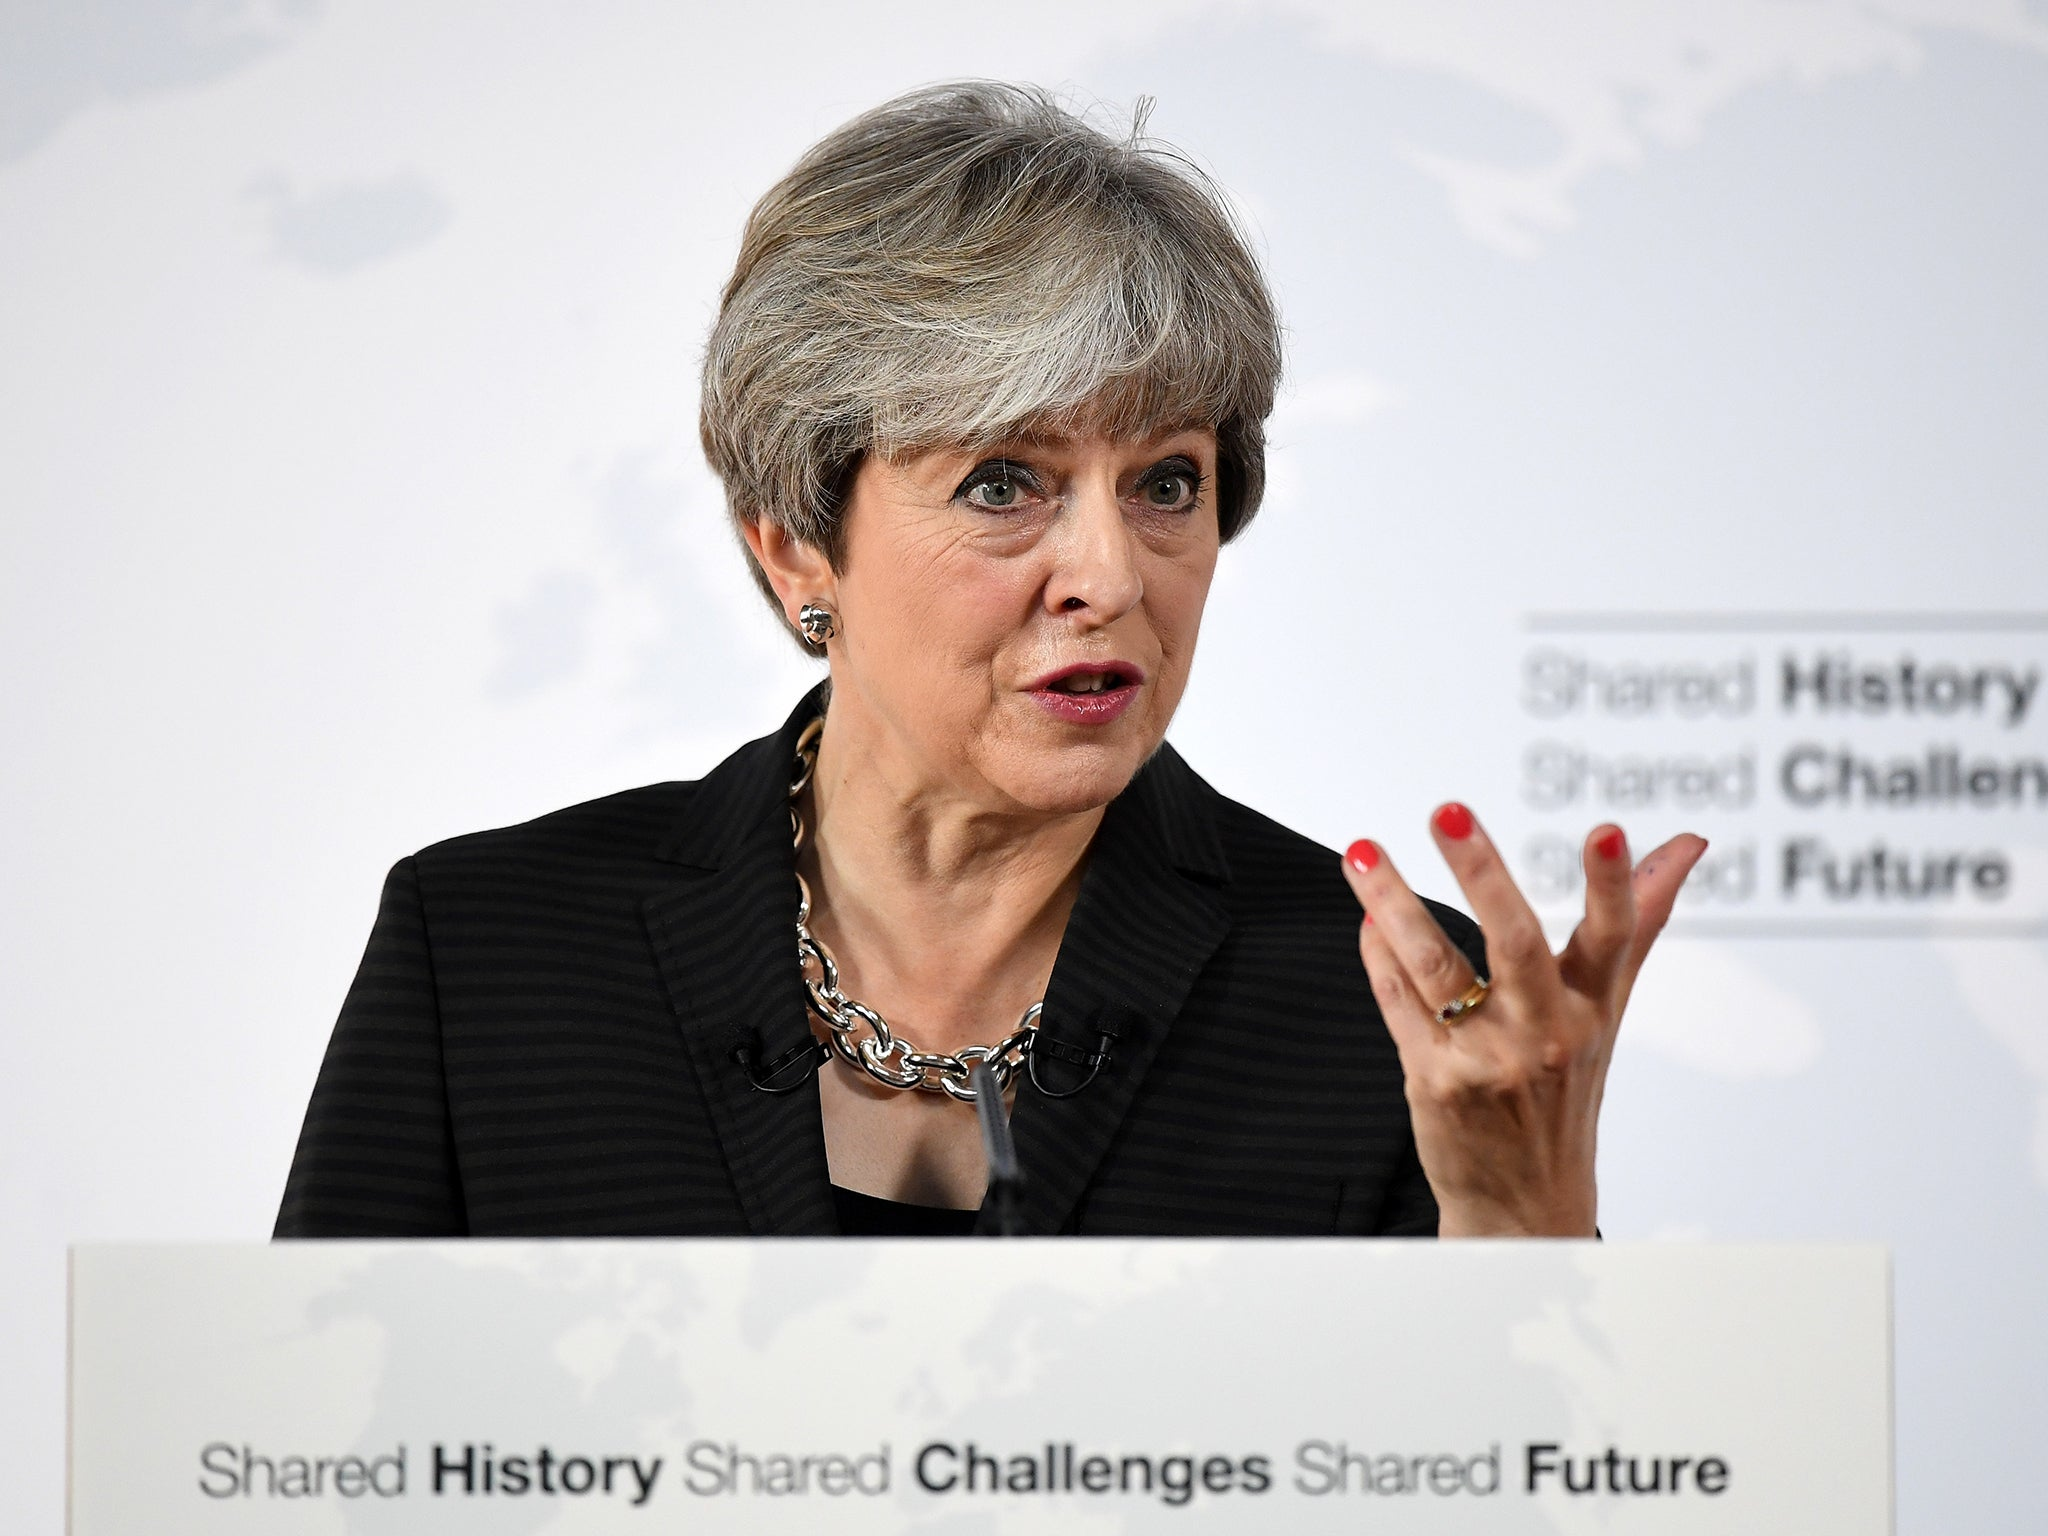 Theresa May's Brexit plans in ruins after France and Germany 'reject transitional arrangement'